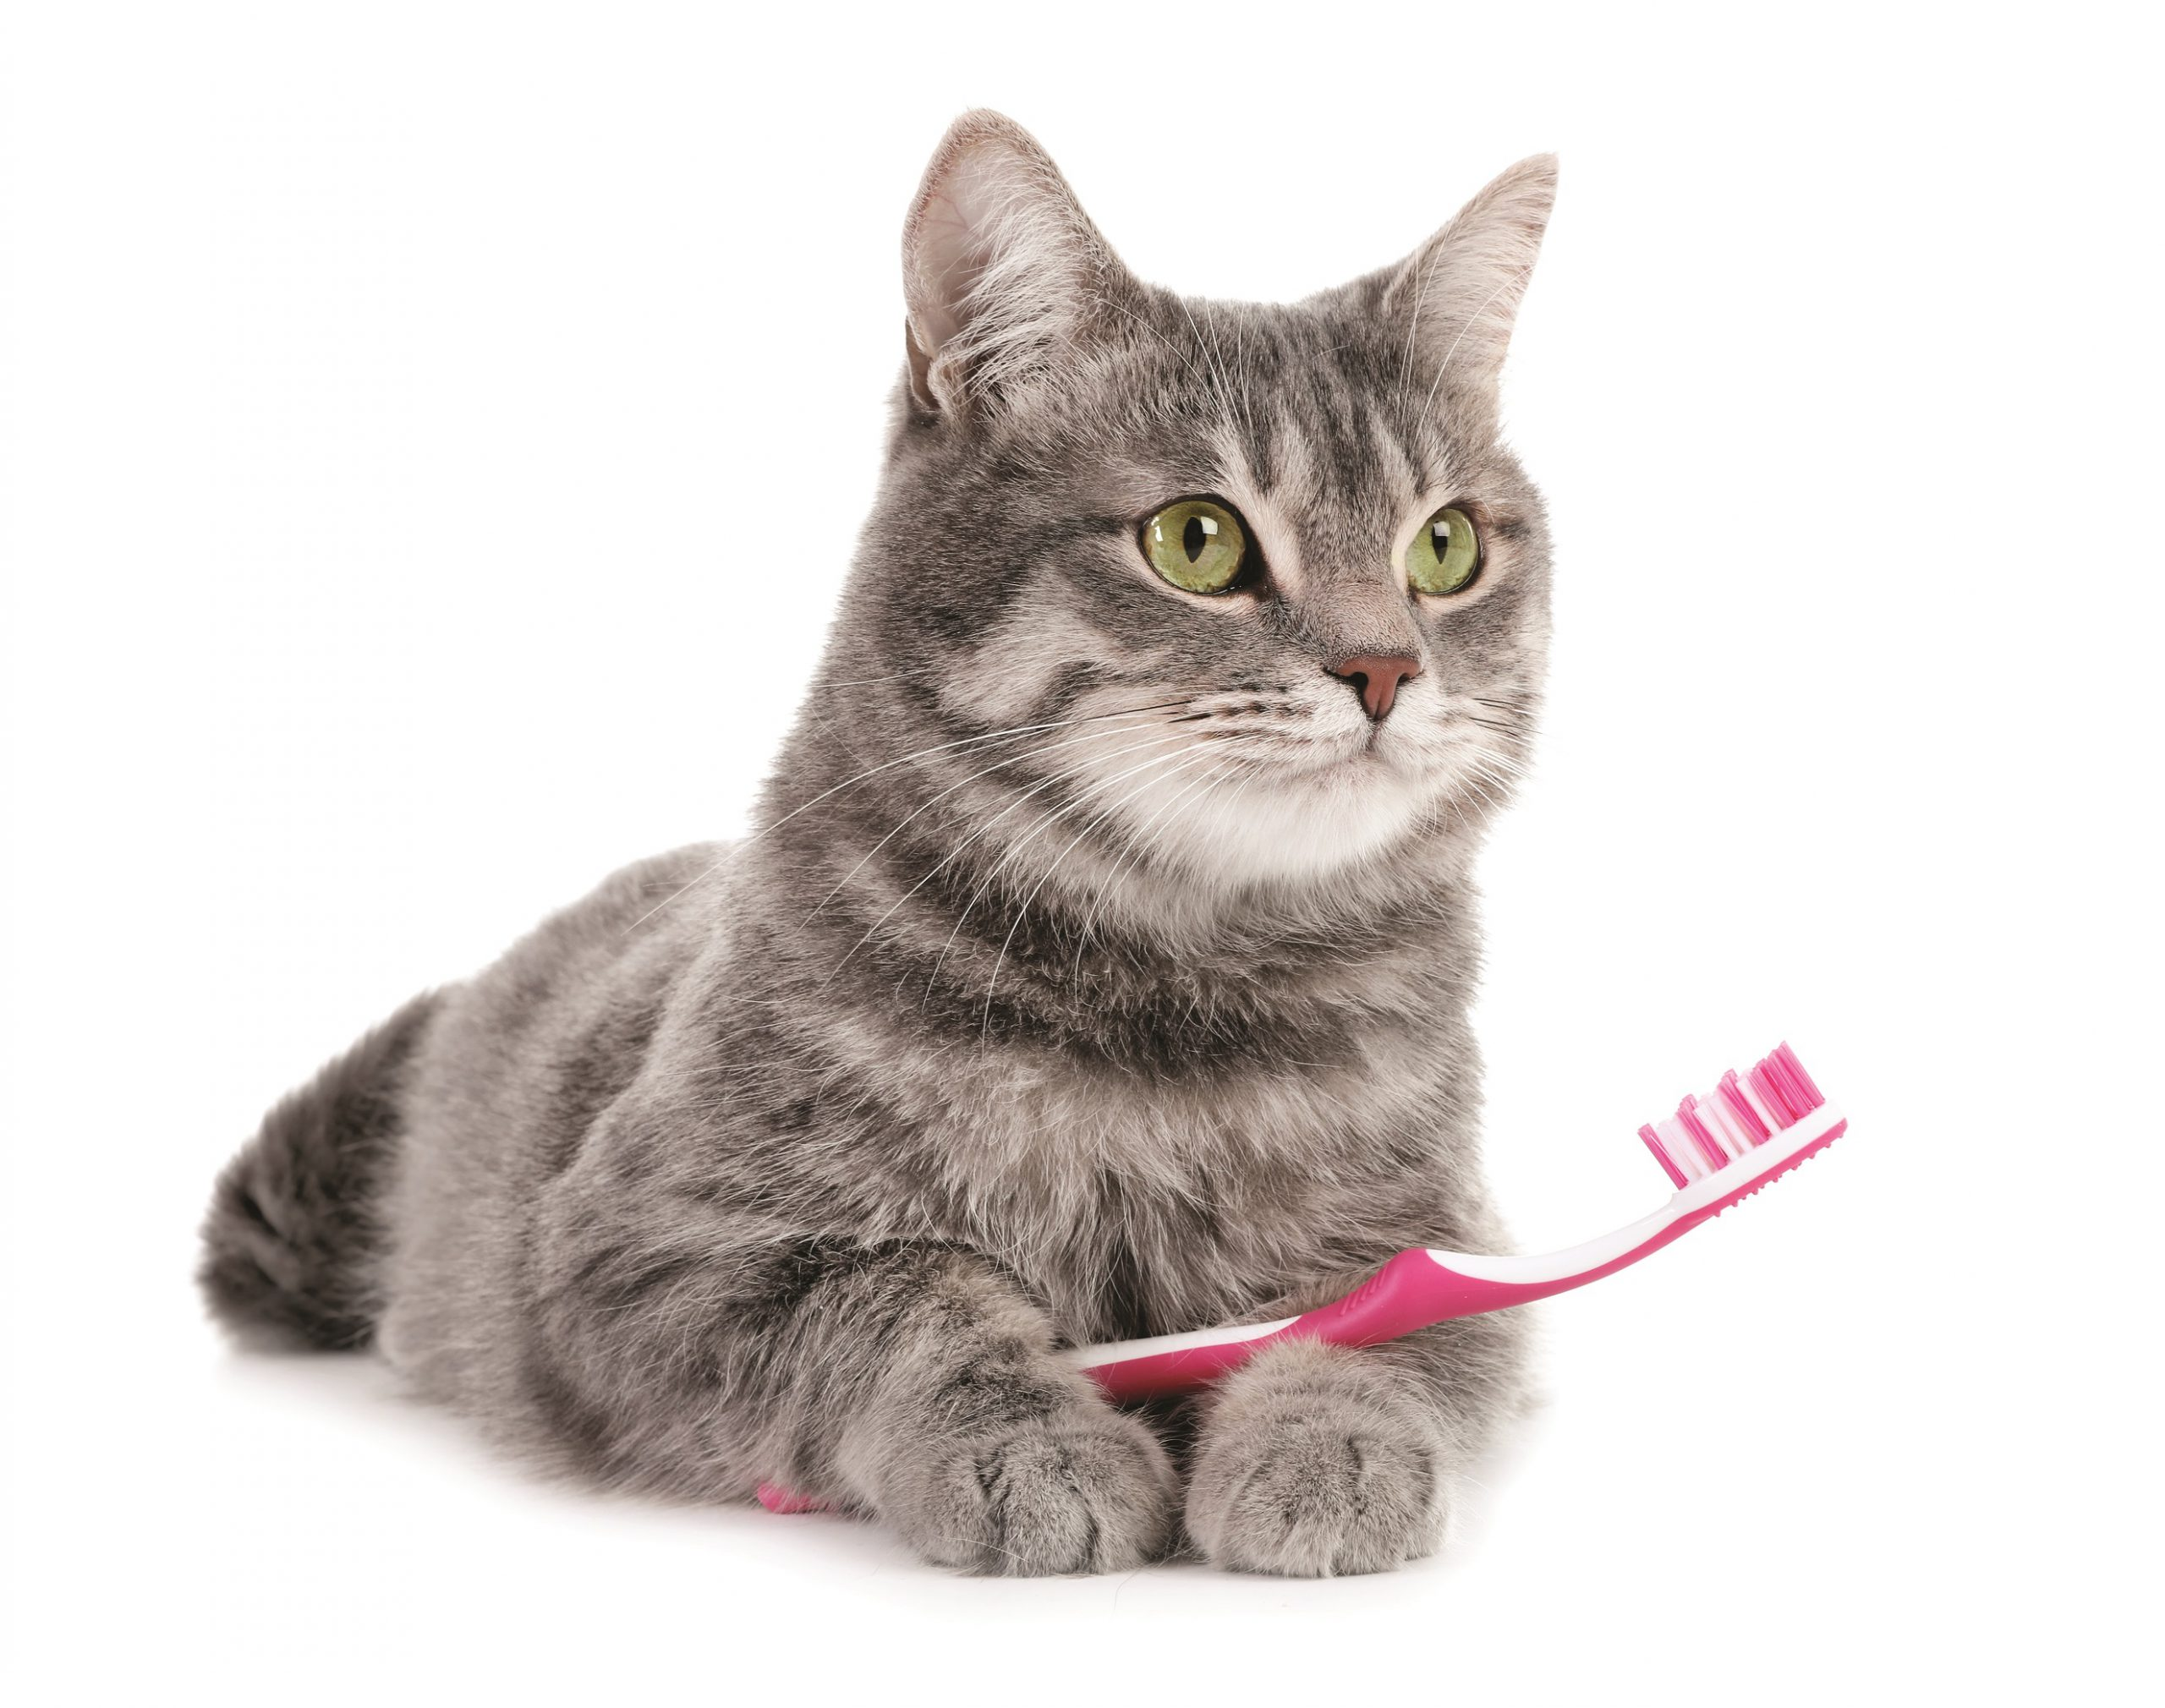 A cat holding a toothbrush lol